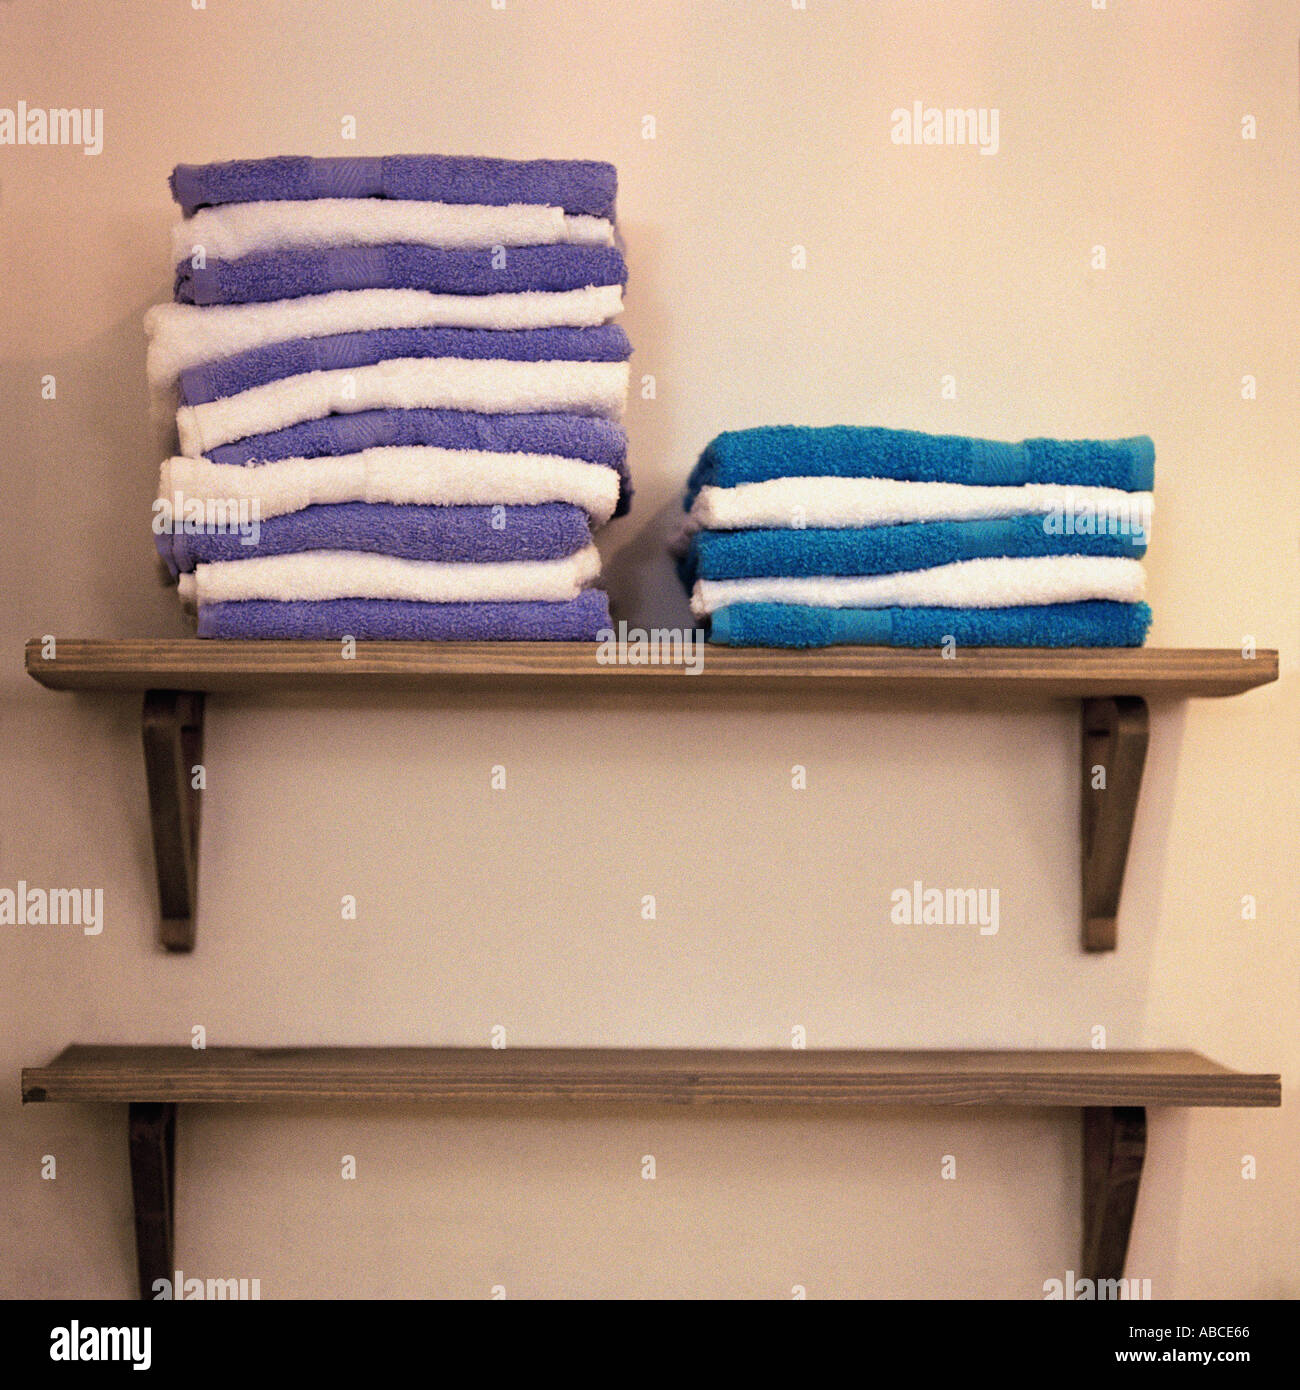 Towels stacked on shelves Stock Photo: 773734 - Alamy